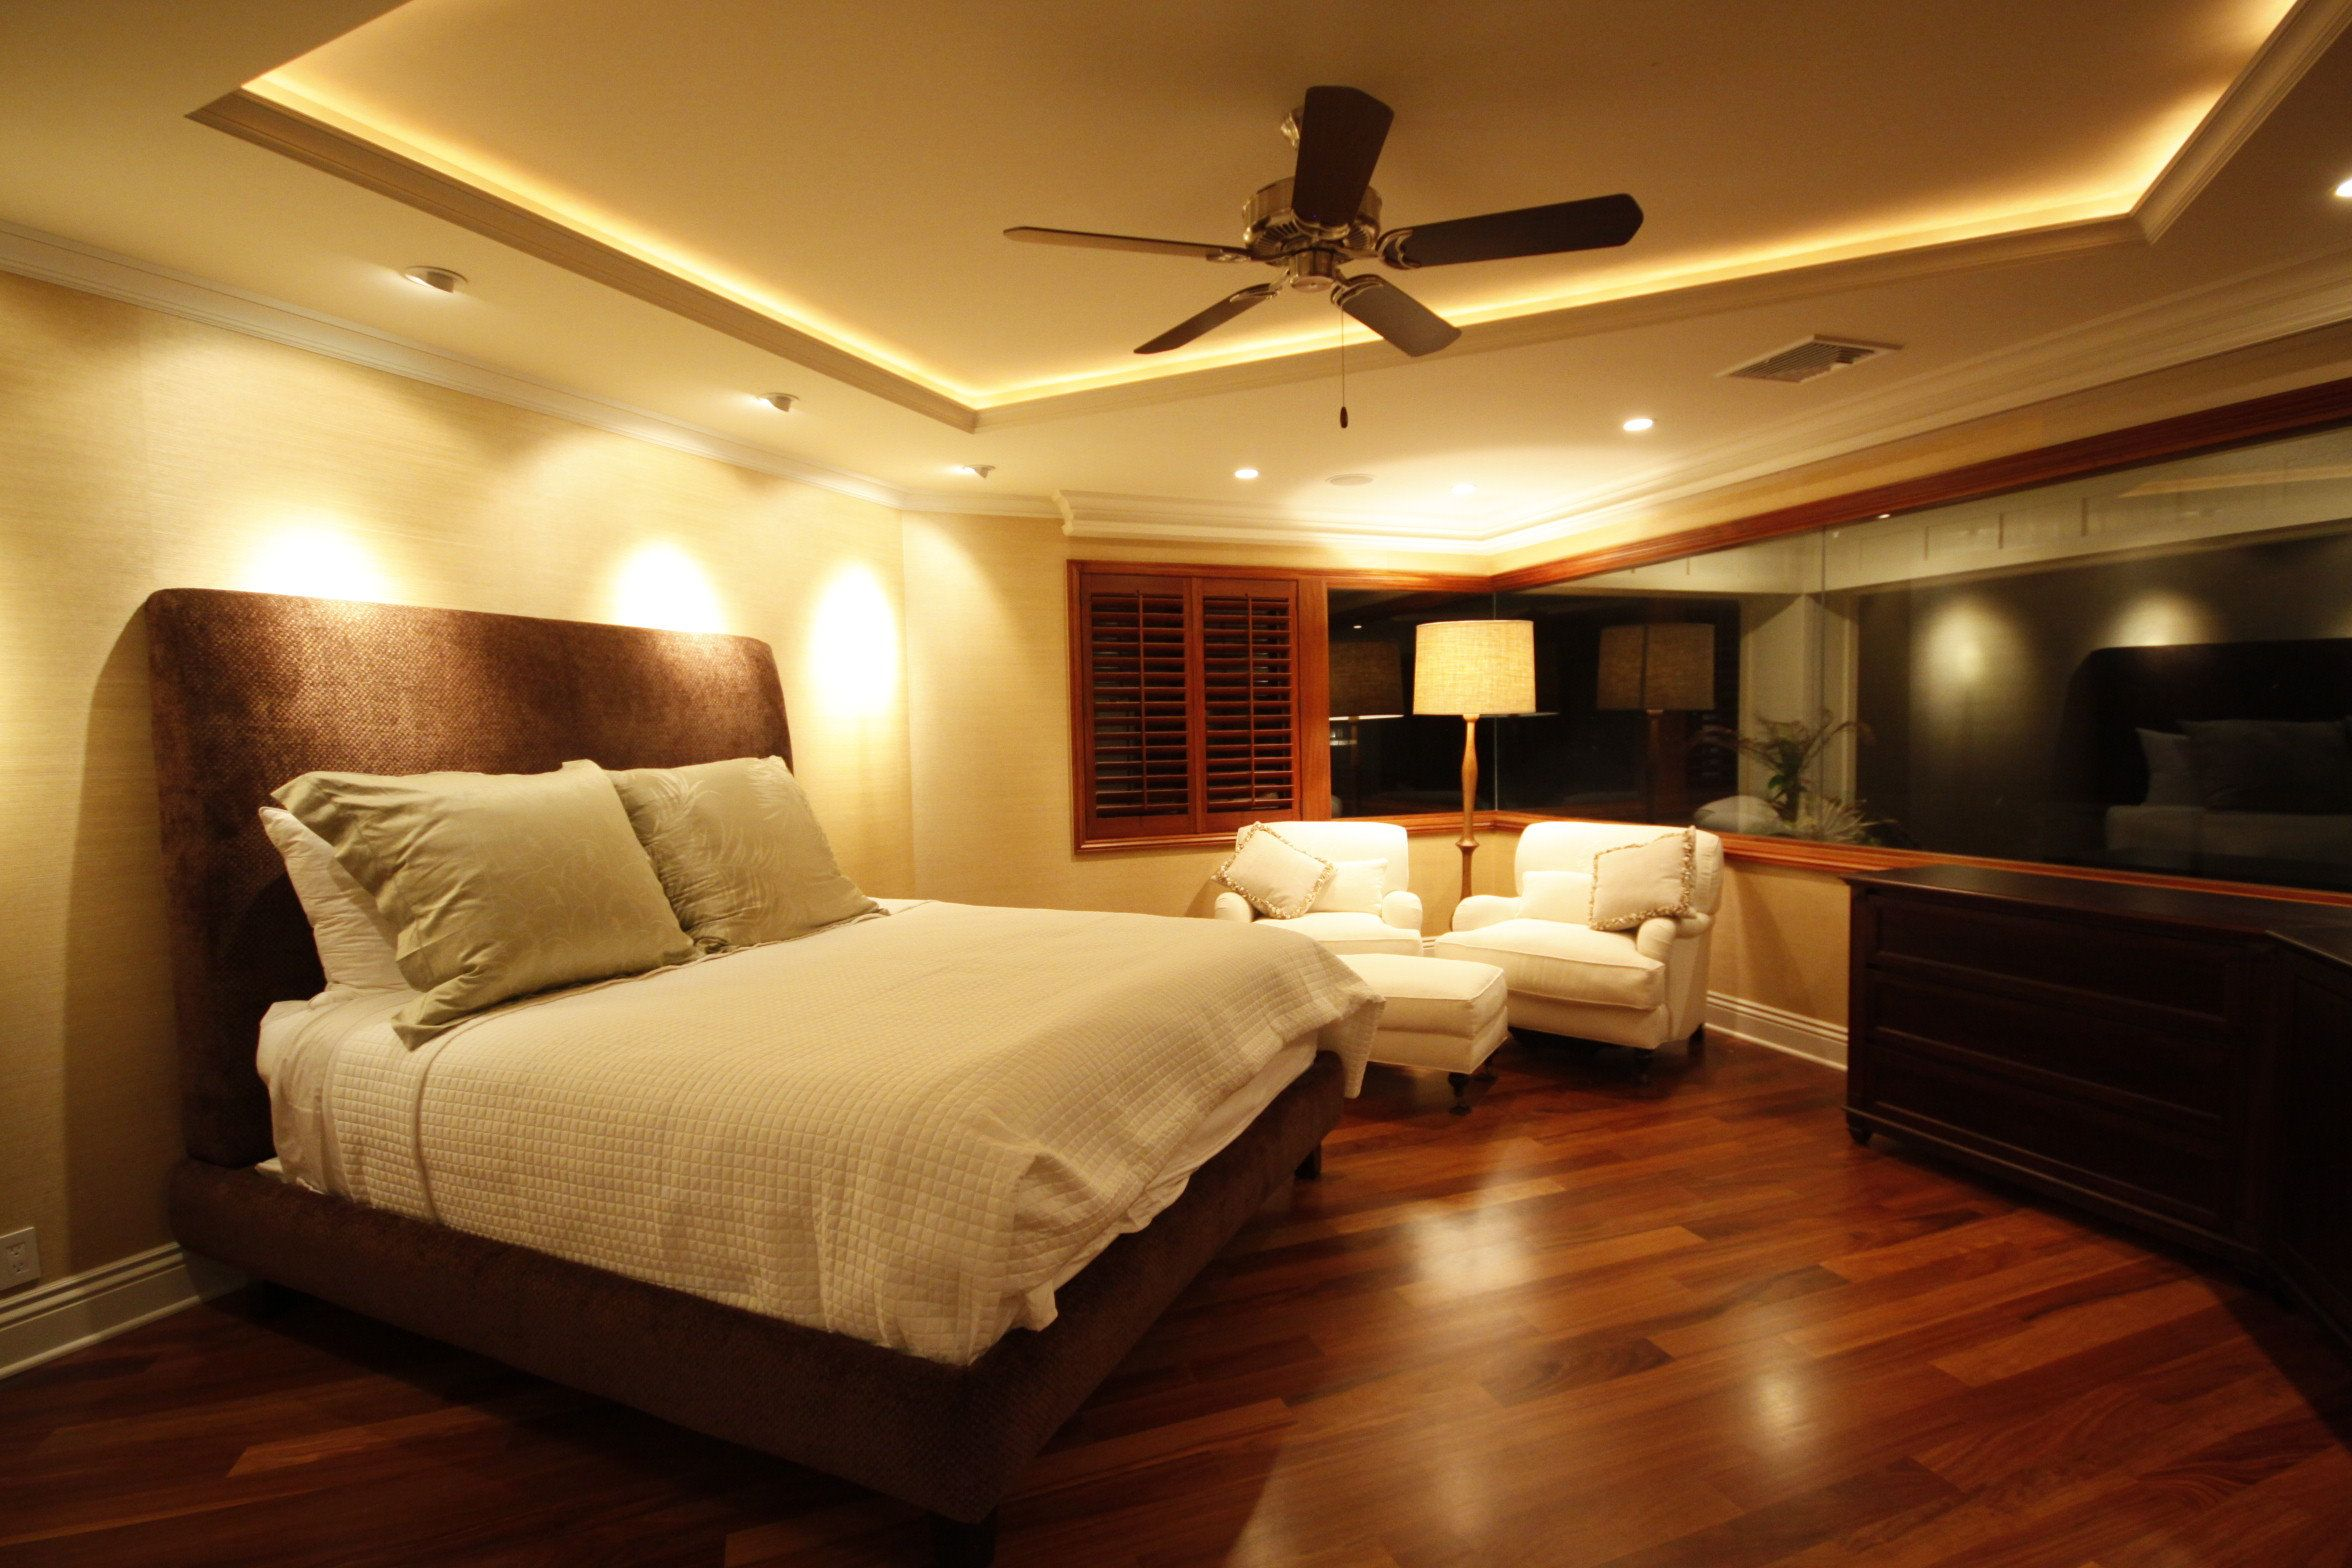 Appealing master bedroom modern decor with wooden floors for Master bedroom designs modern